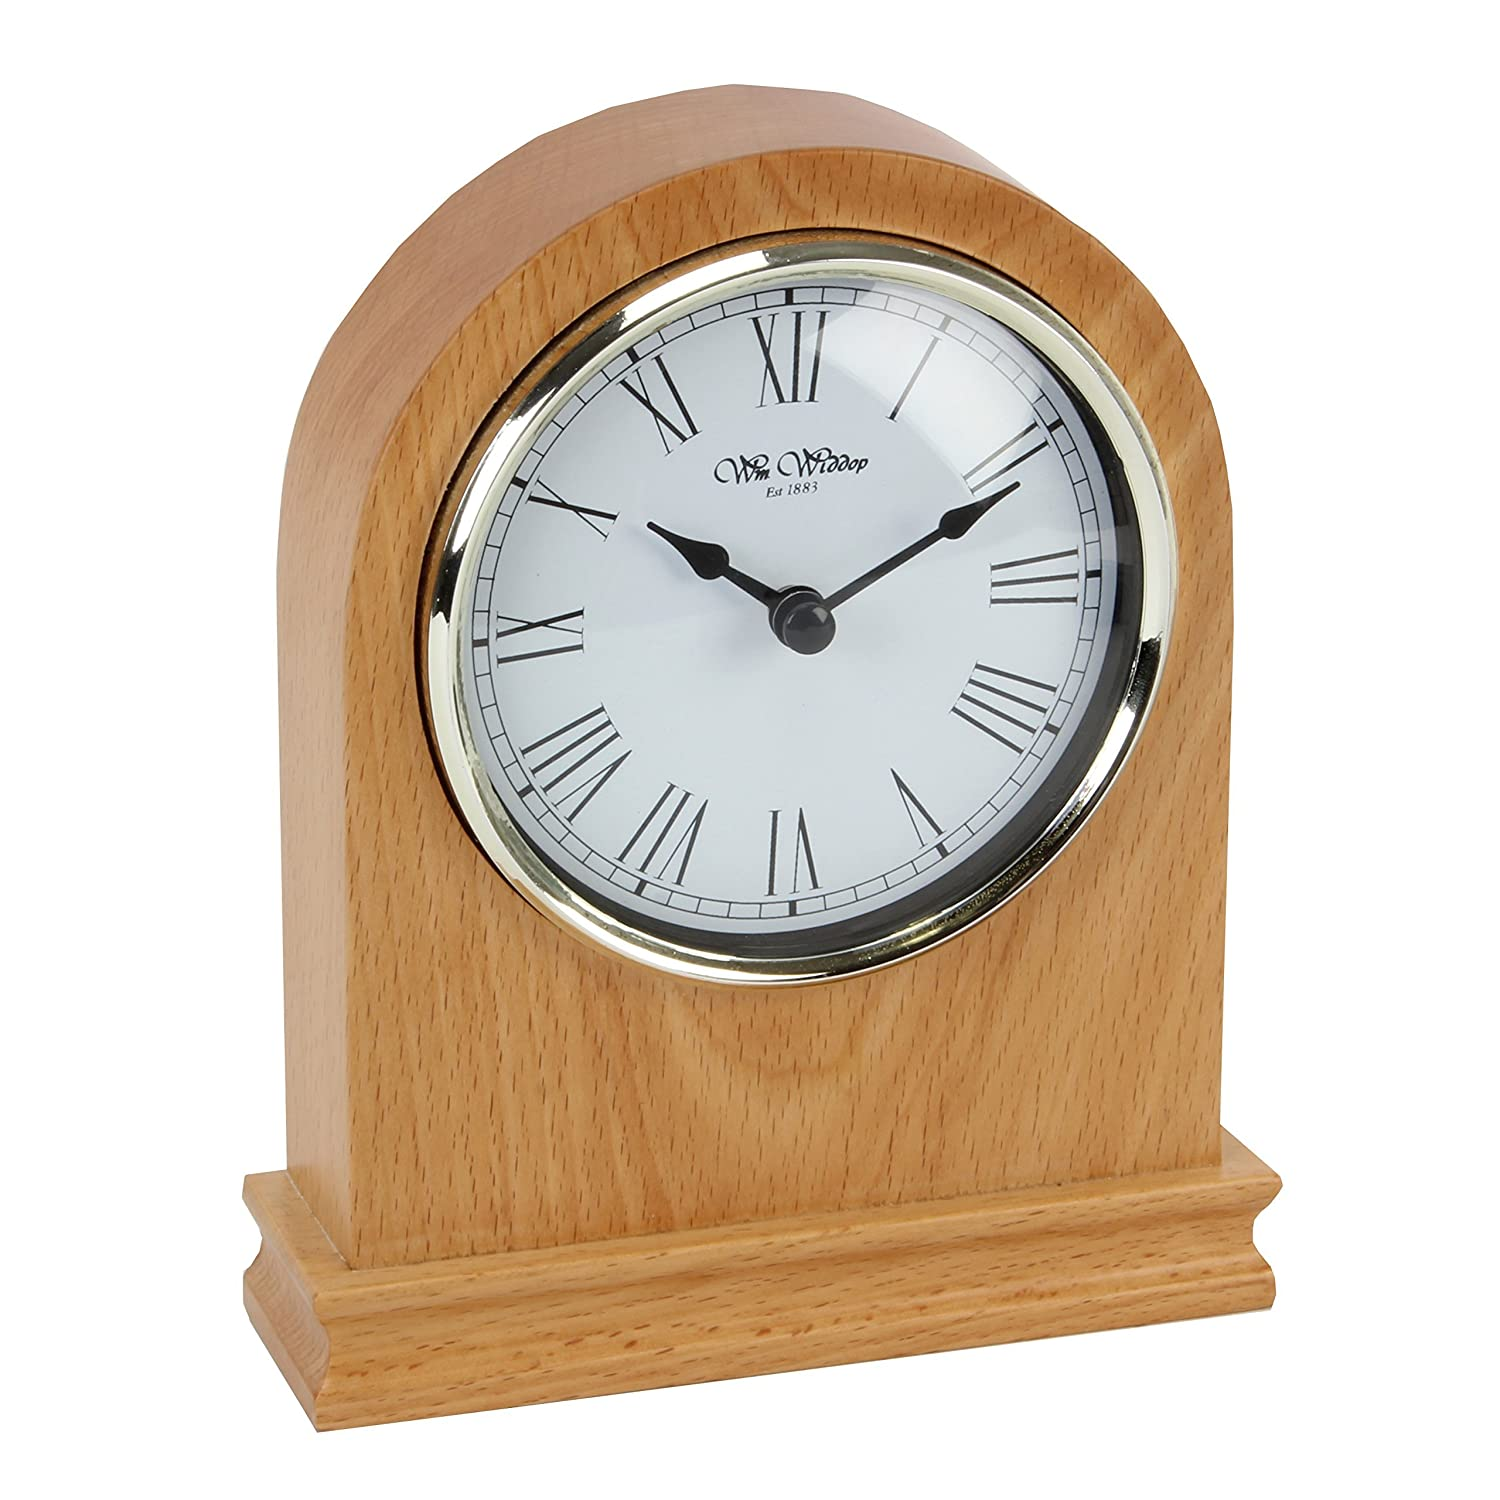 Arched Design Wooden Mantel Clock with Roman Numerals Watching Clocks